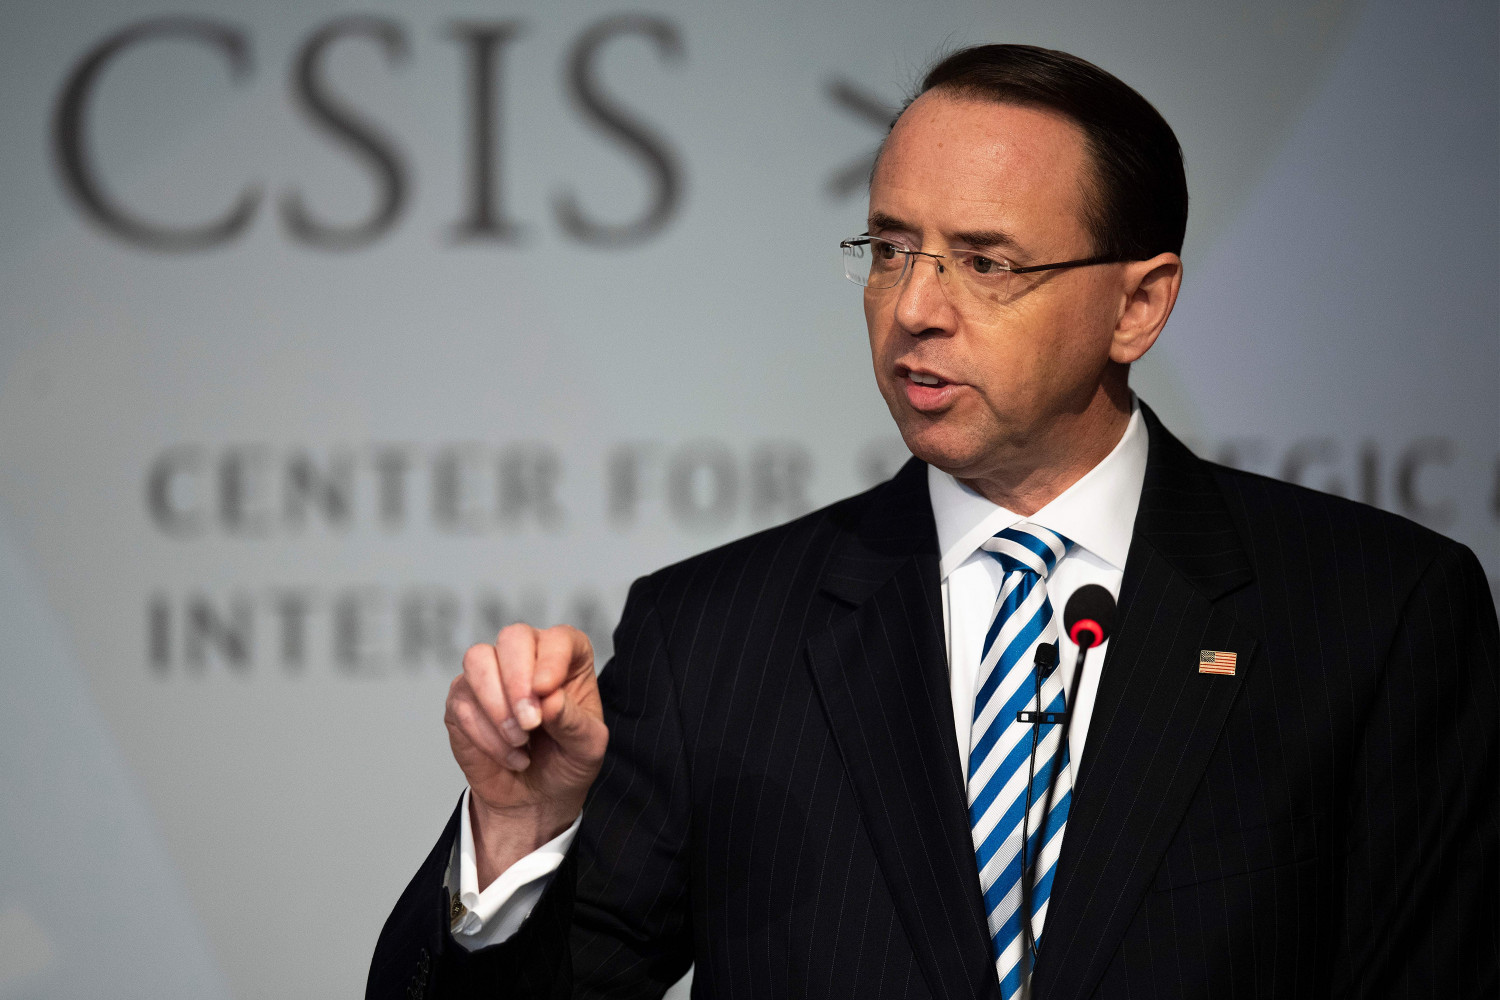 DOJ Emails Reveal Internal Response to 'Wiretap' Allegations Against Rosenstein